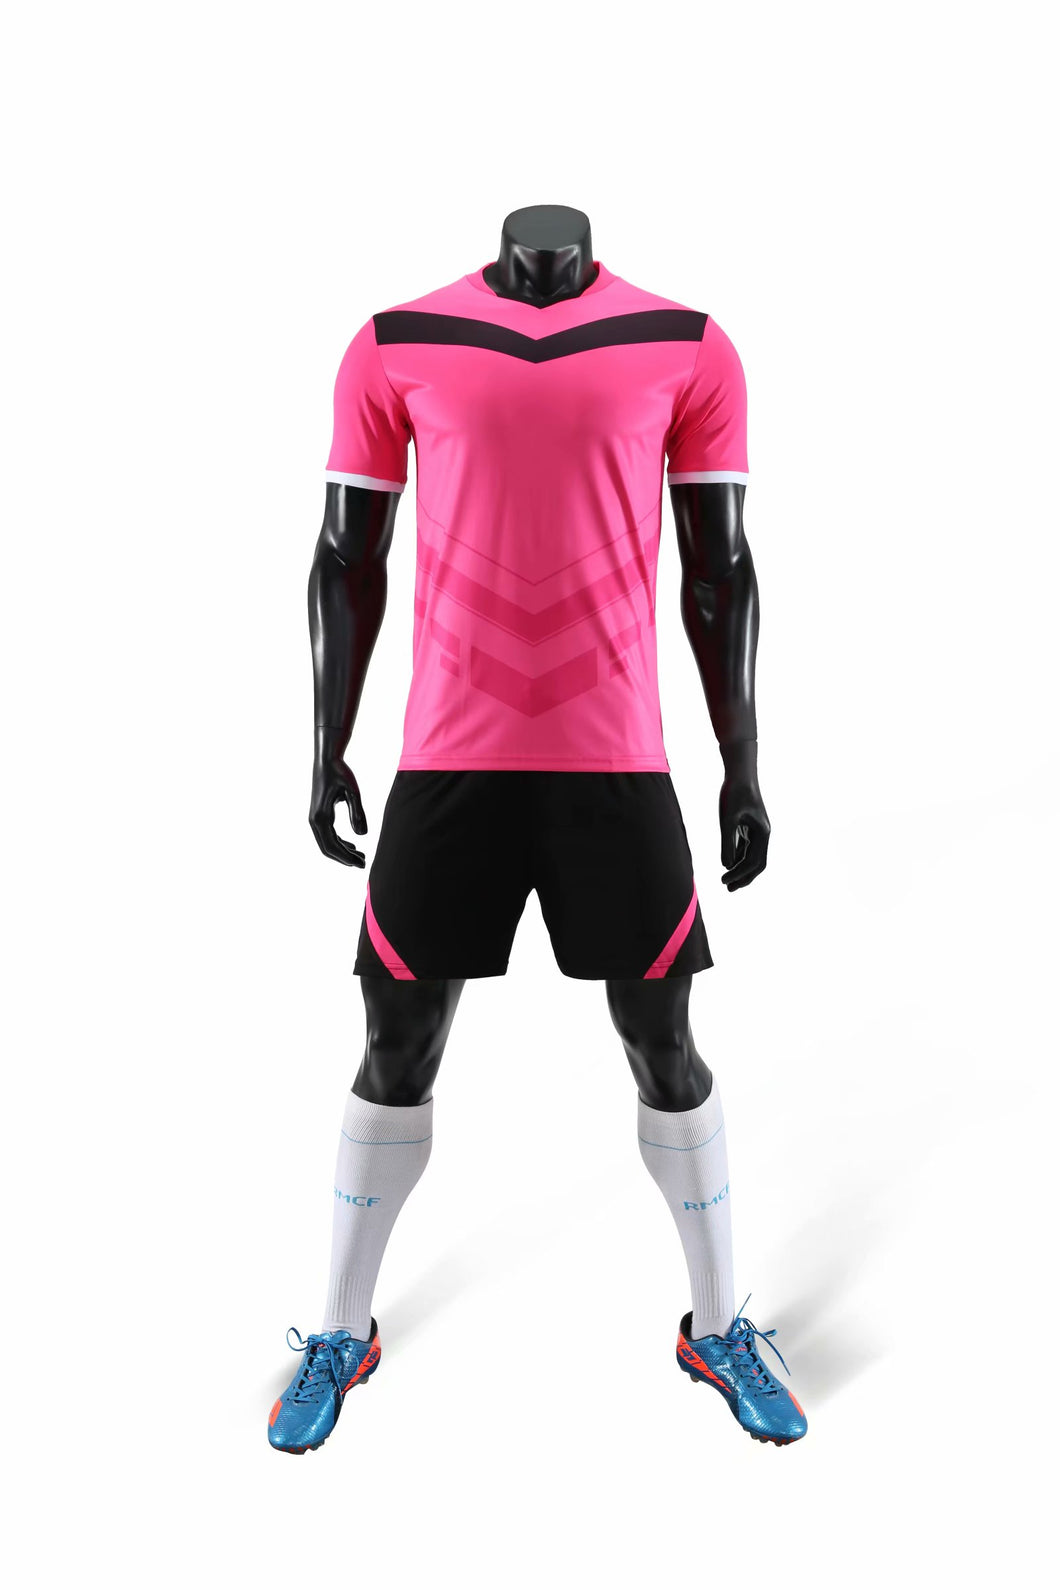 Full Football Kit - Pink with V Design and Black Shorts.